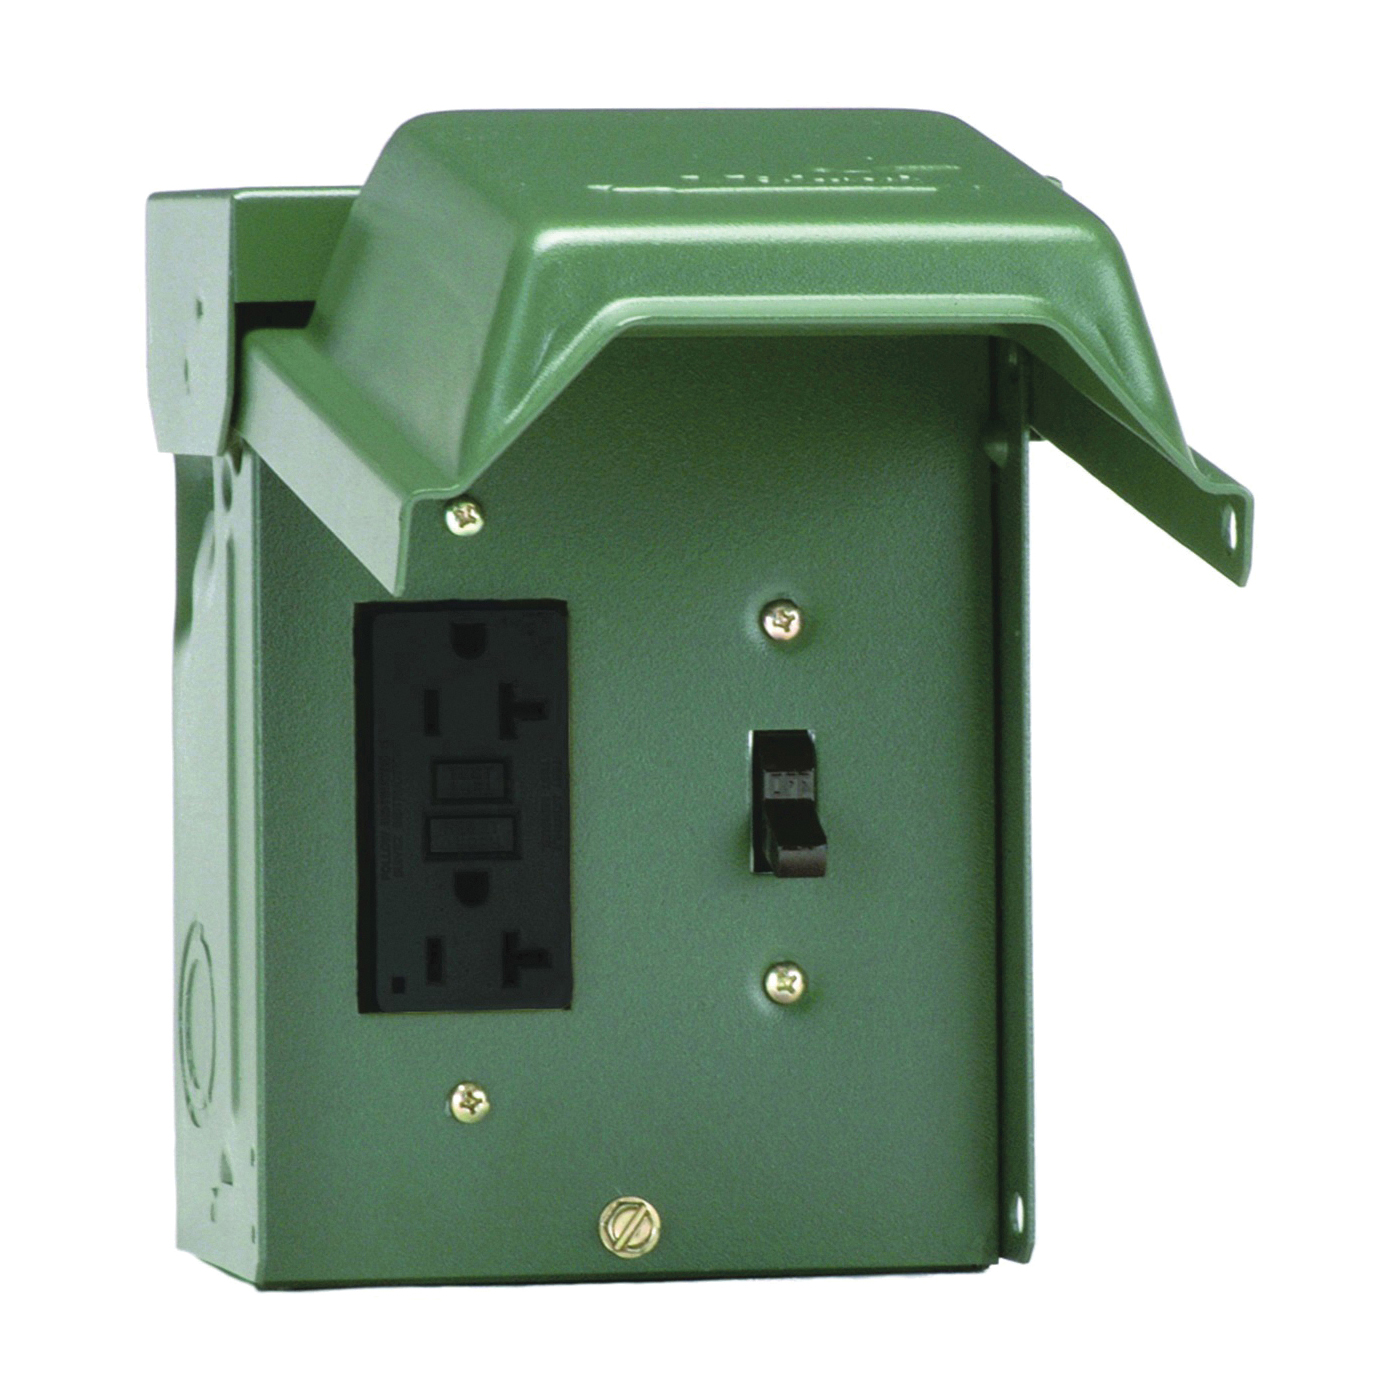 Picture of GE Industrial Solutions U010S010GRP Power Outlet, 20 A, 120 V, Green